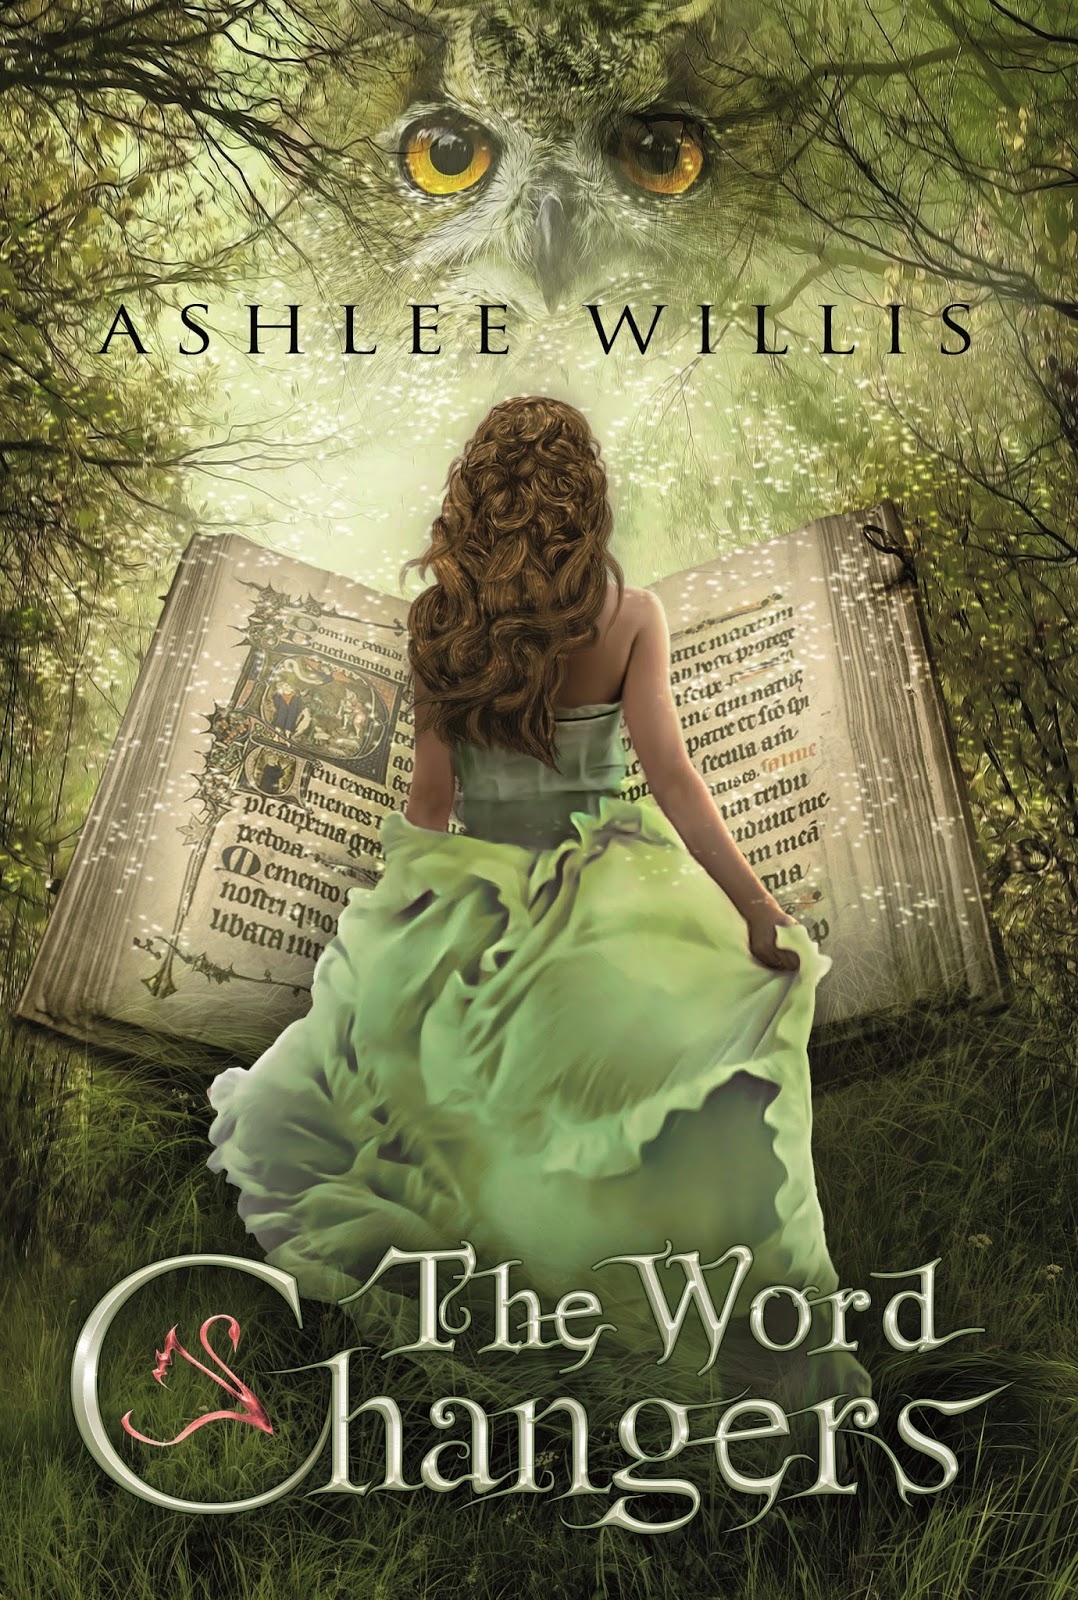 Book Cover Fantasy ~ Tales of goldstone wood ashlee willis all new cover